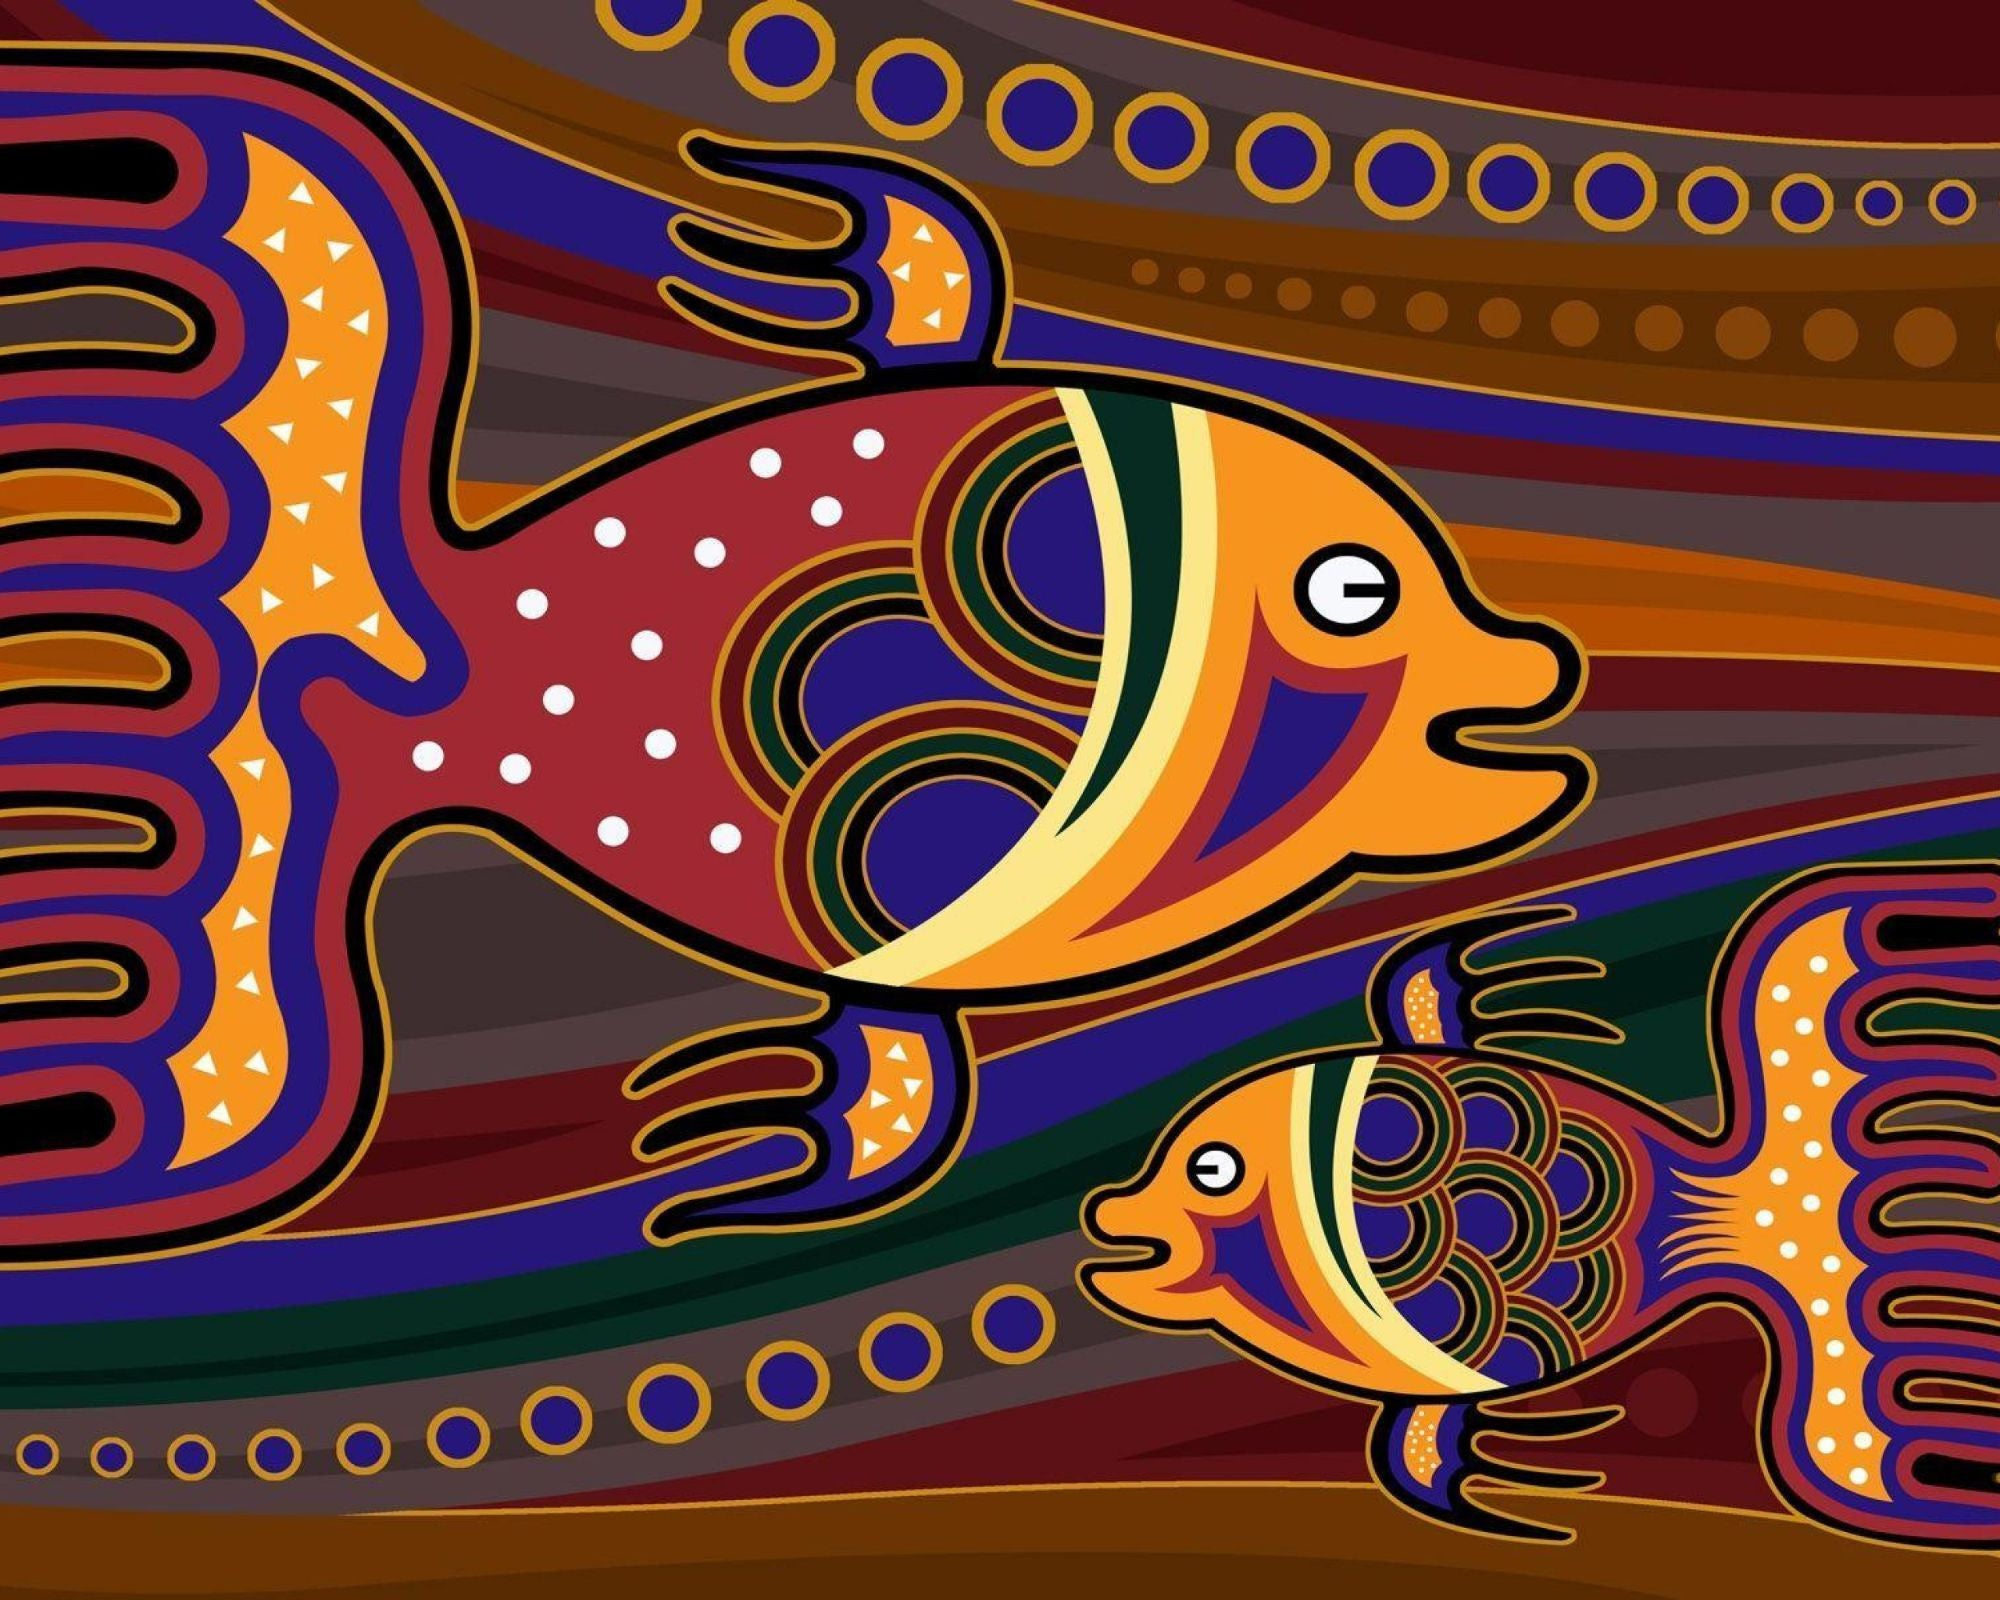 Colorful Fish Art - Framed Prints by Hamid Raza | Buy Posters ...